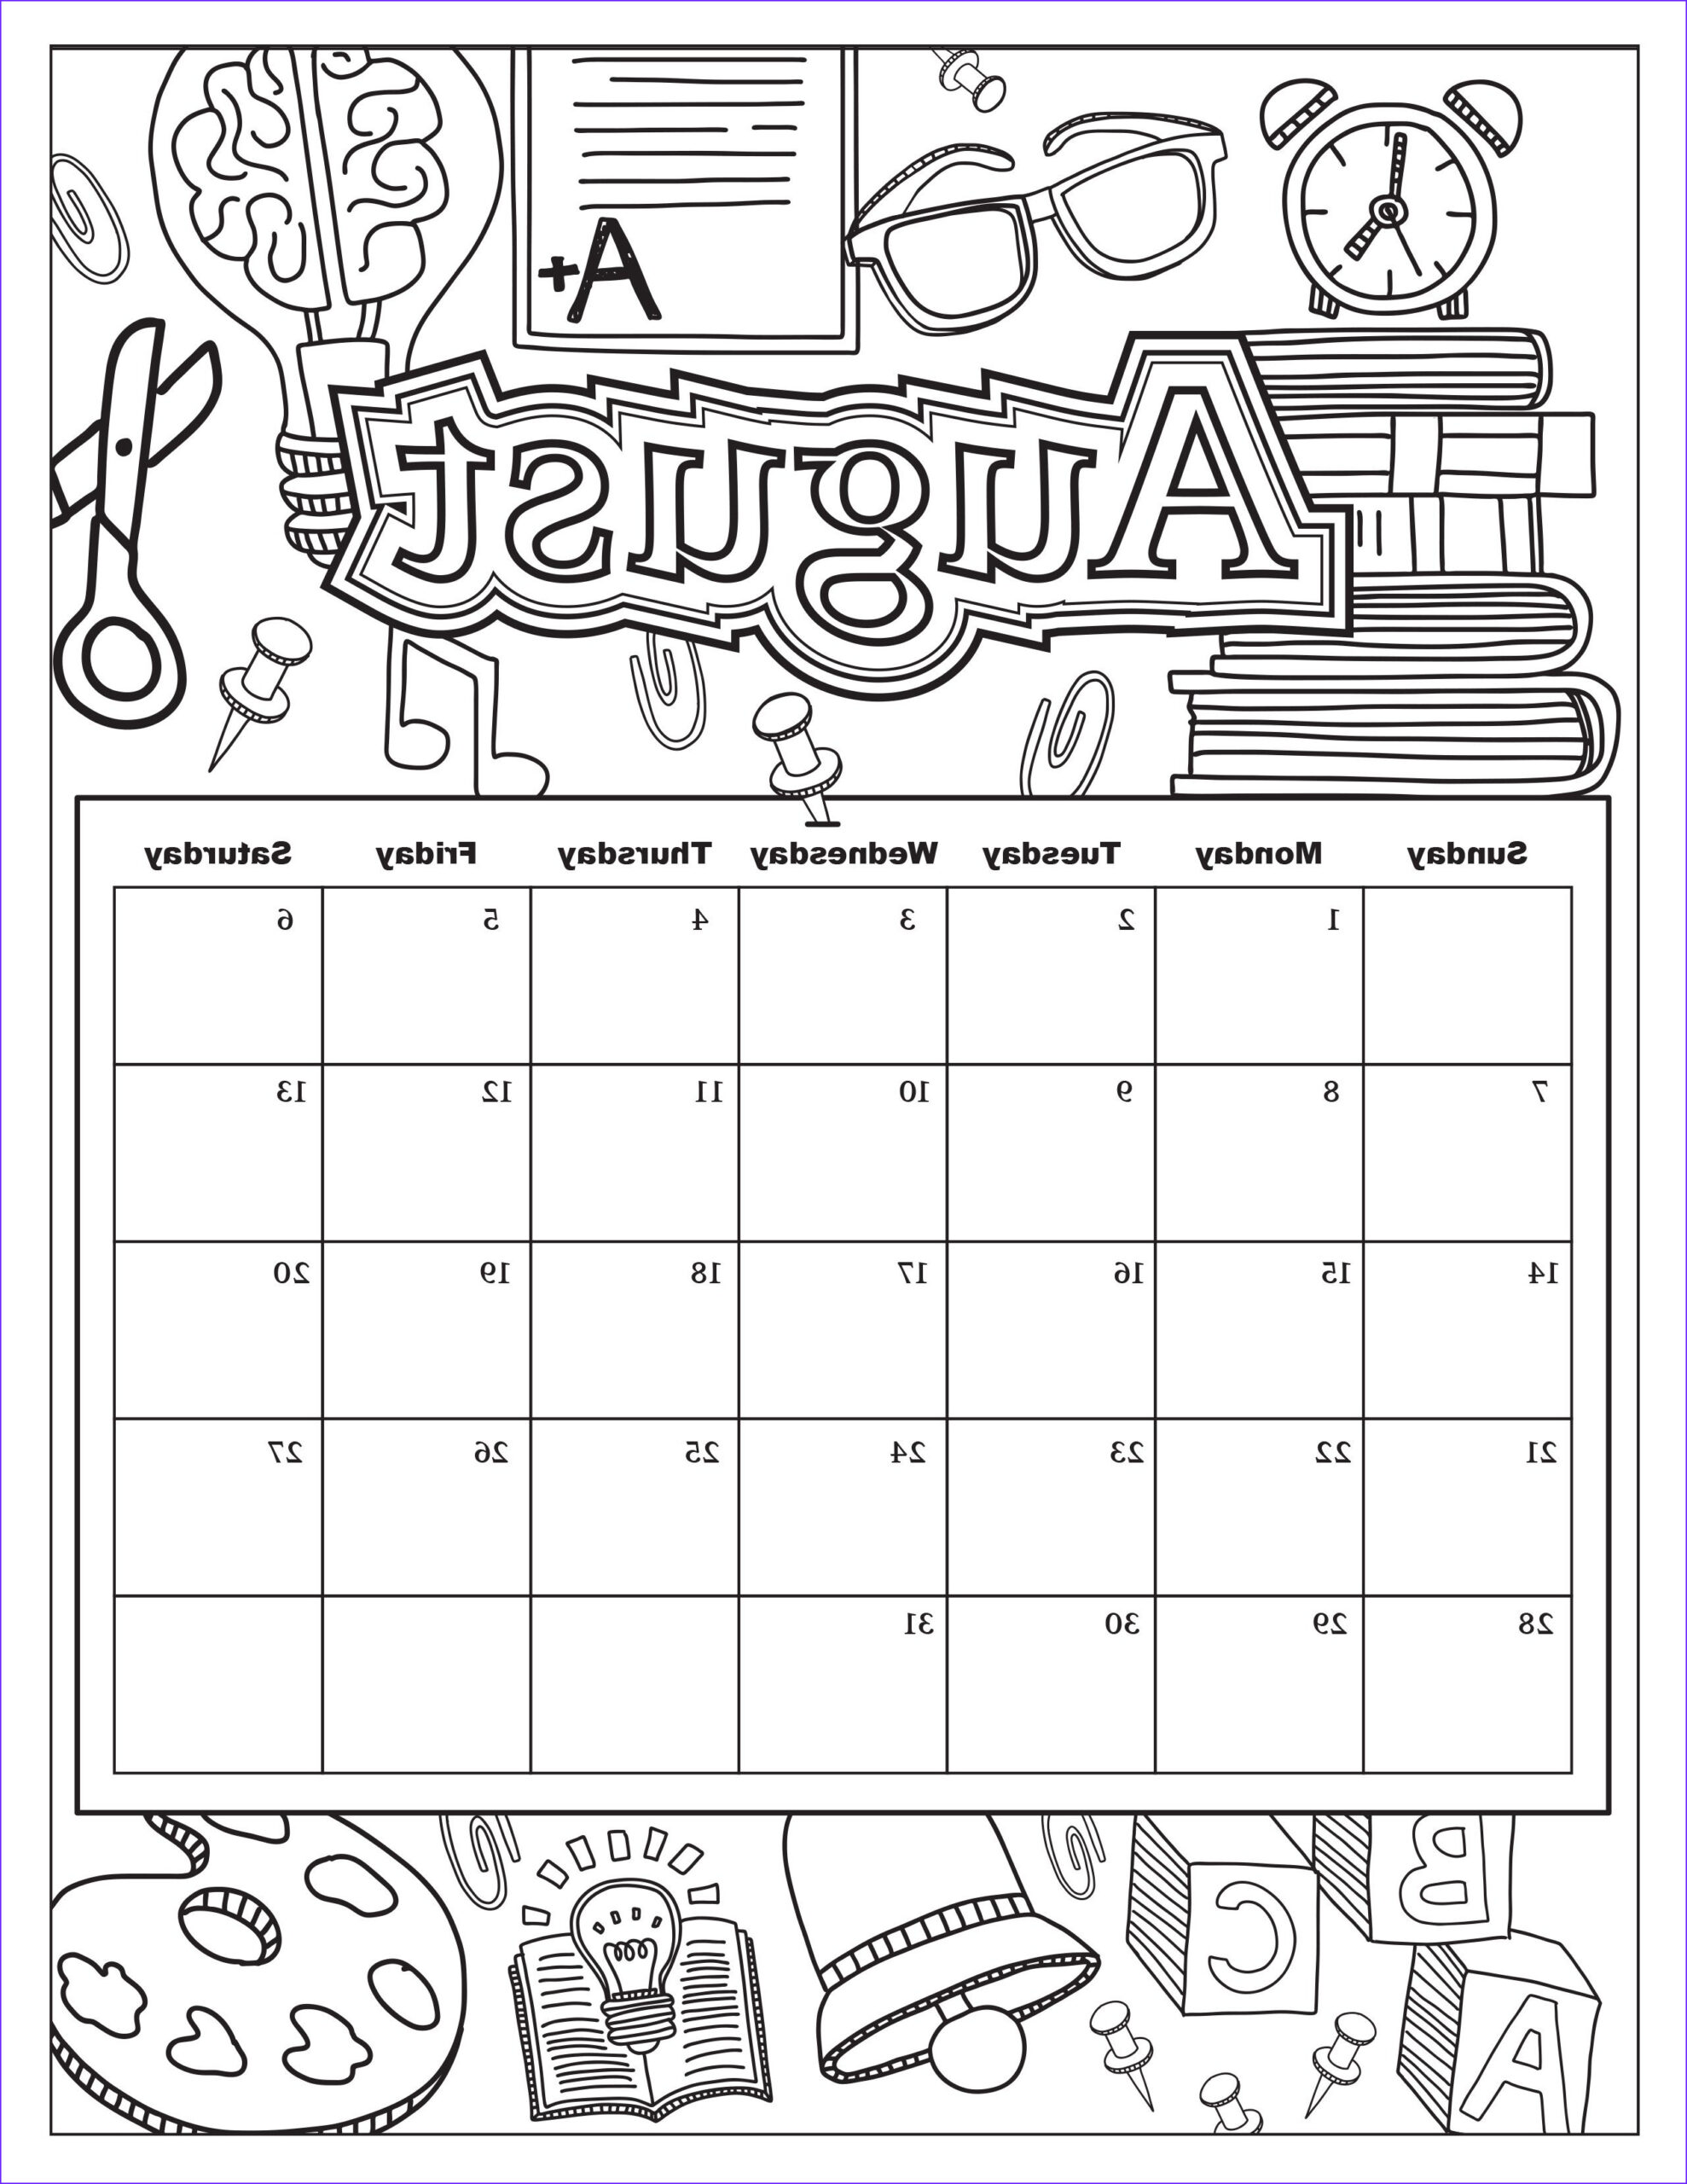 Coloring Magazine Best Of Photography Free Download Coloring Pages From Popular Adult Coloring